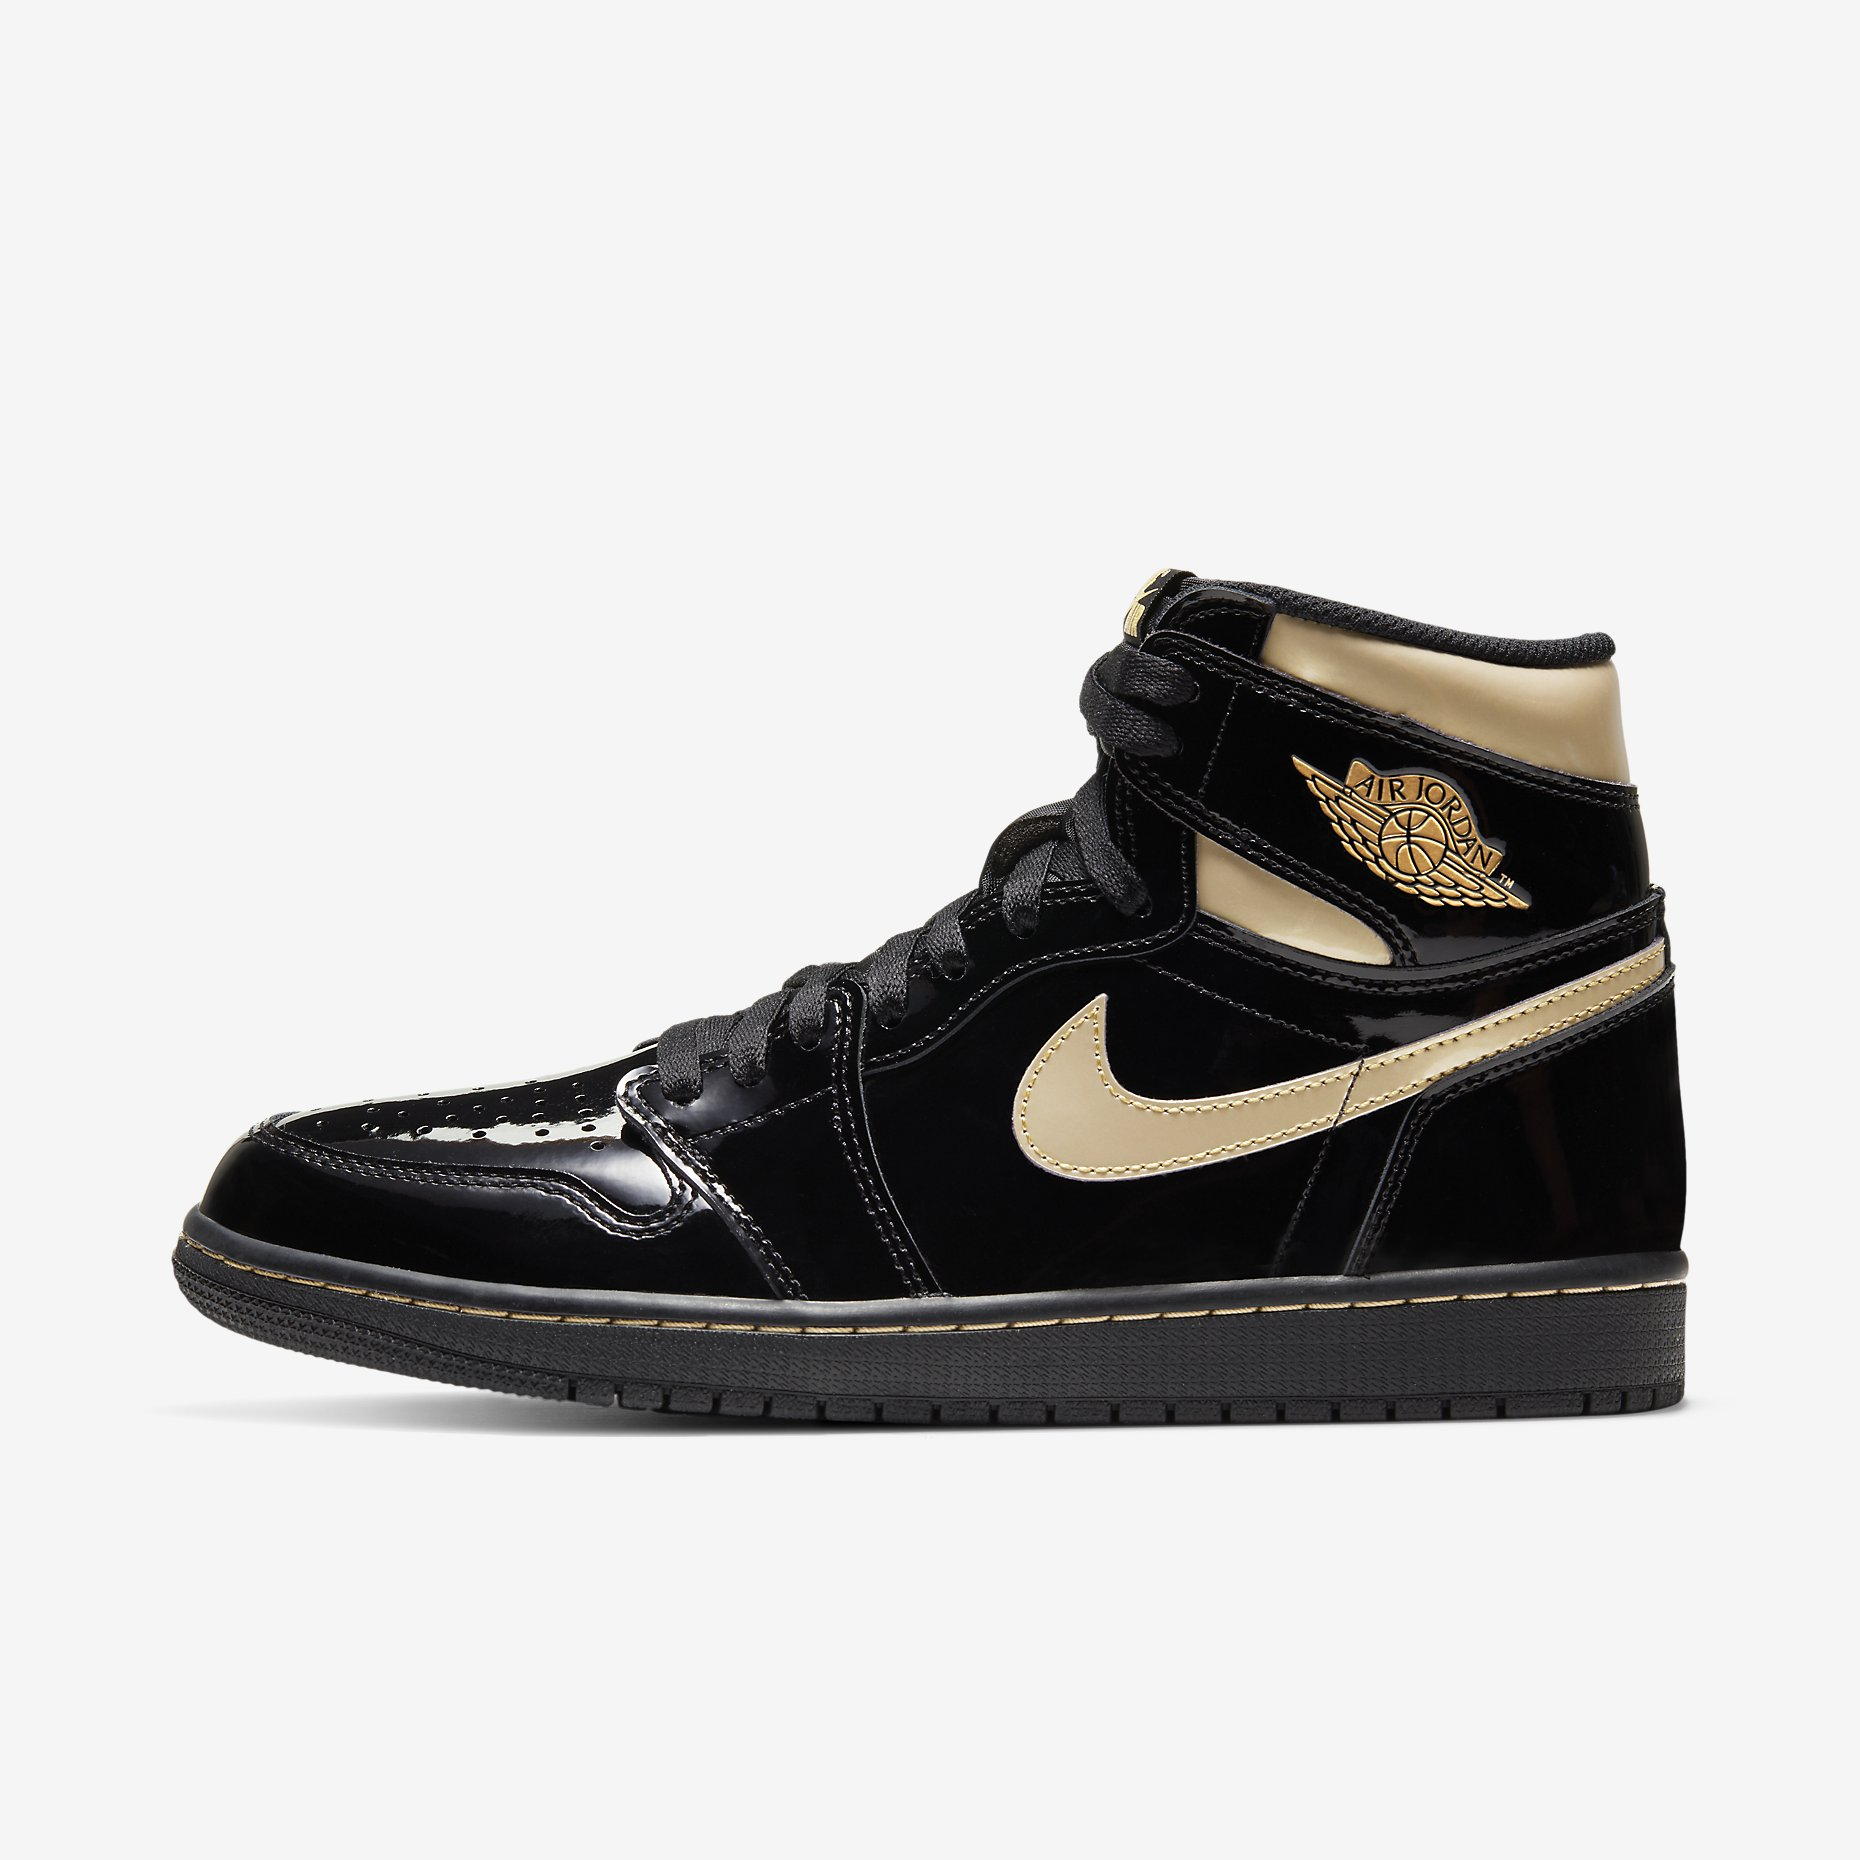 Air Jordan 1 Retro High OG 'Black Gold'}